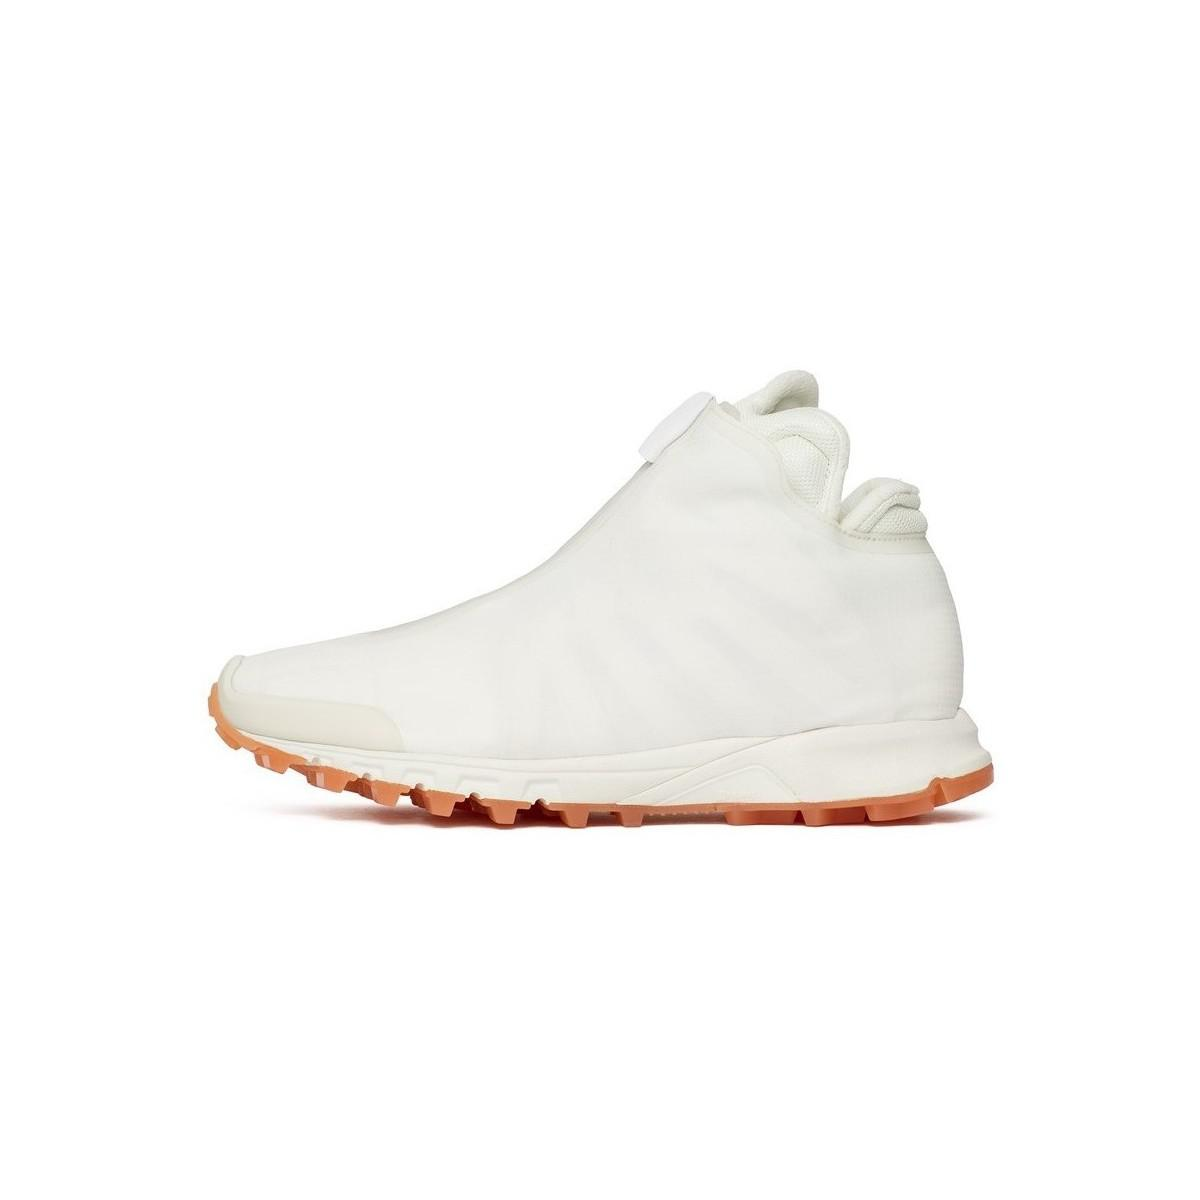 73139d6f0 Reebok X Cottweiler Trail Men s Shoes (high-top Trainers) In White ...